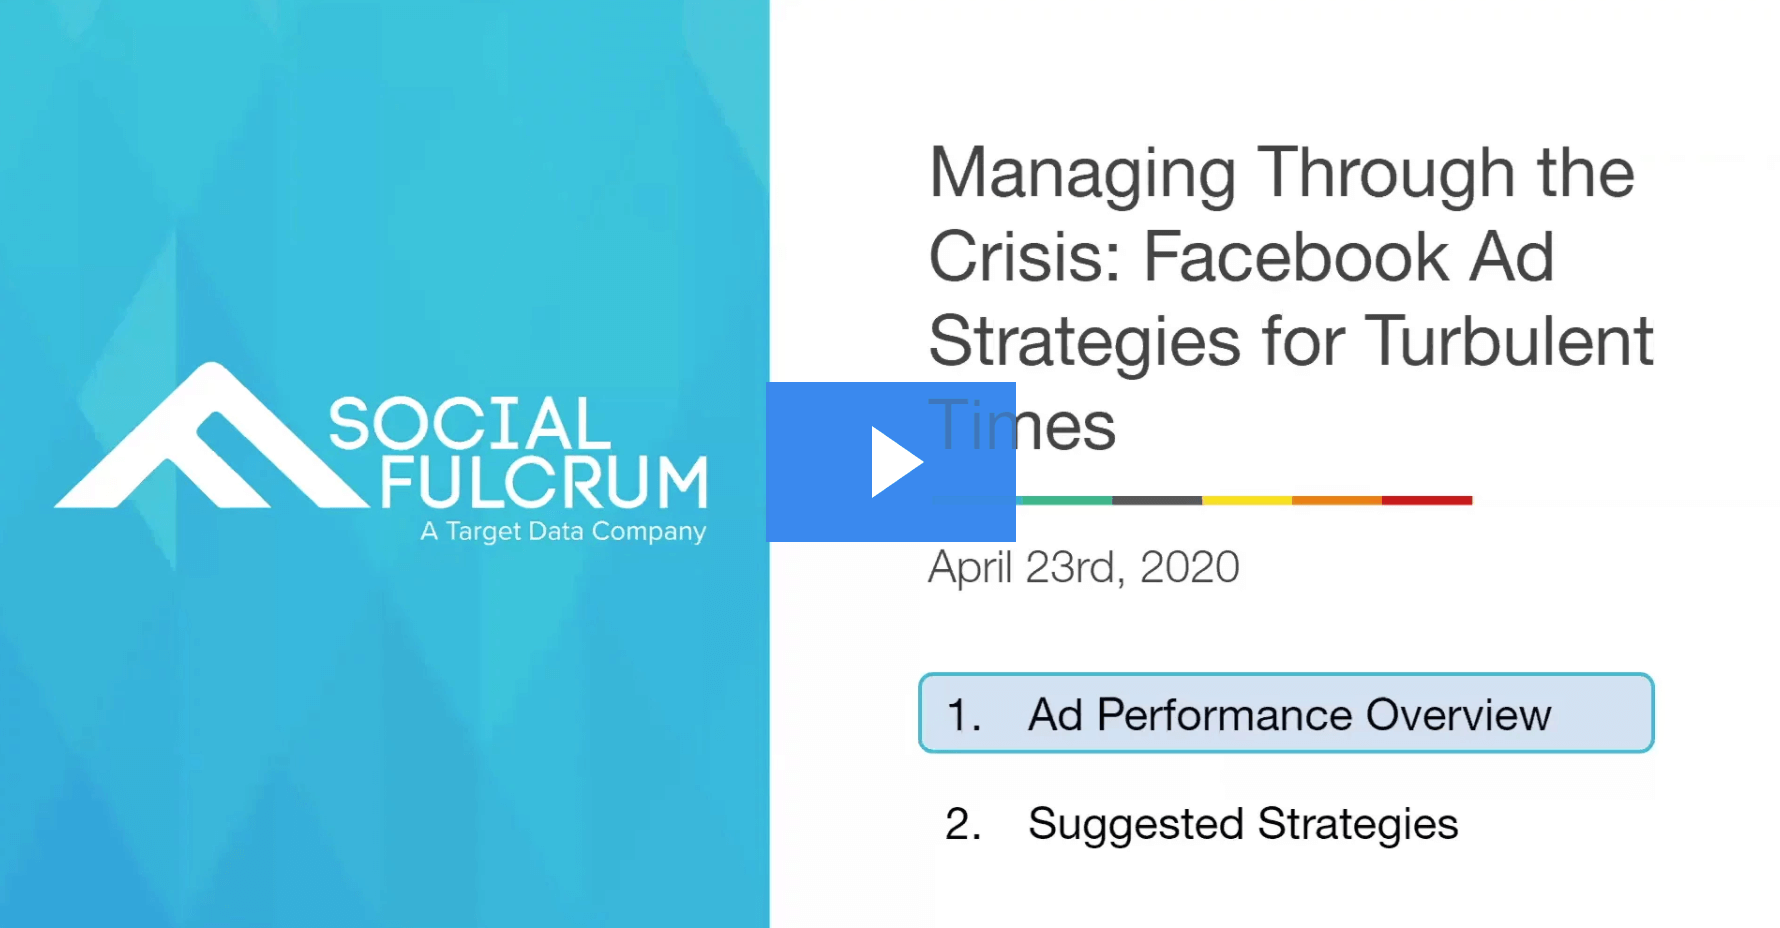 Facebook-Ad-Strategies-for-turbulent-times